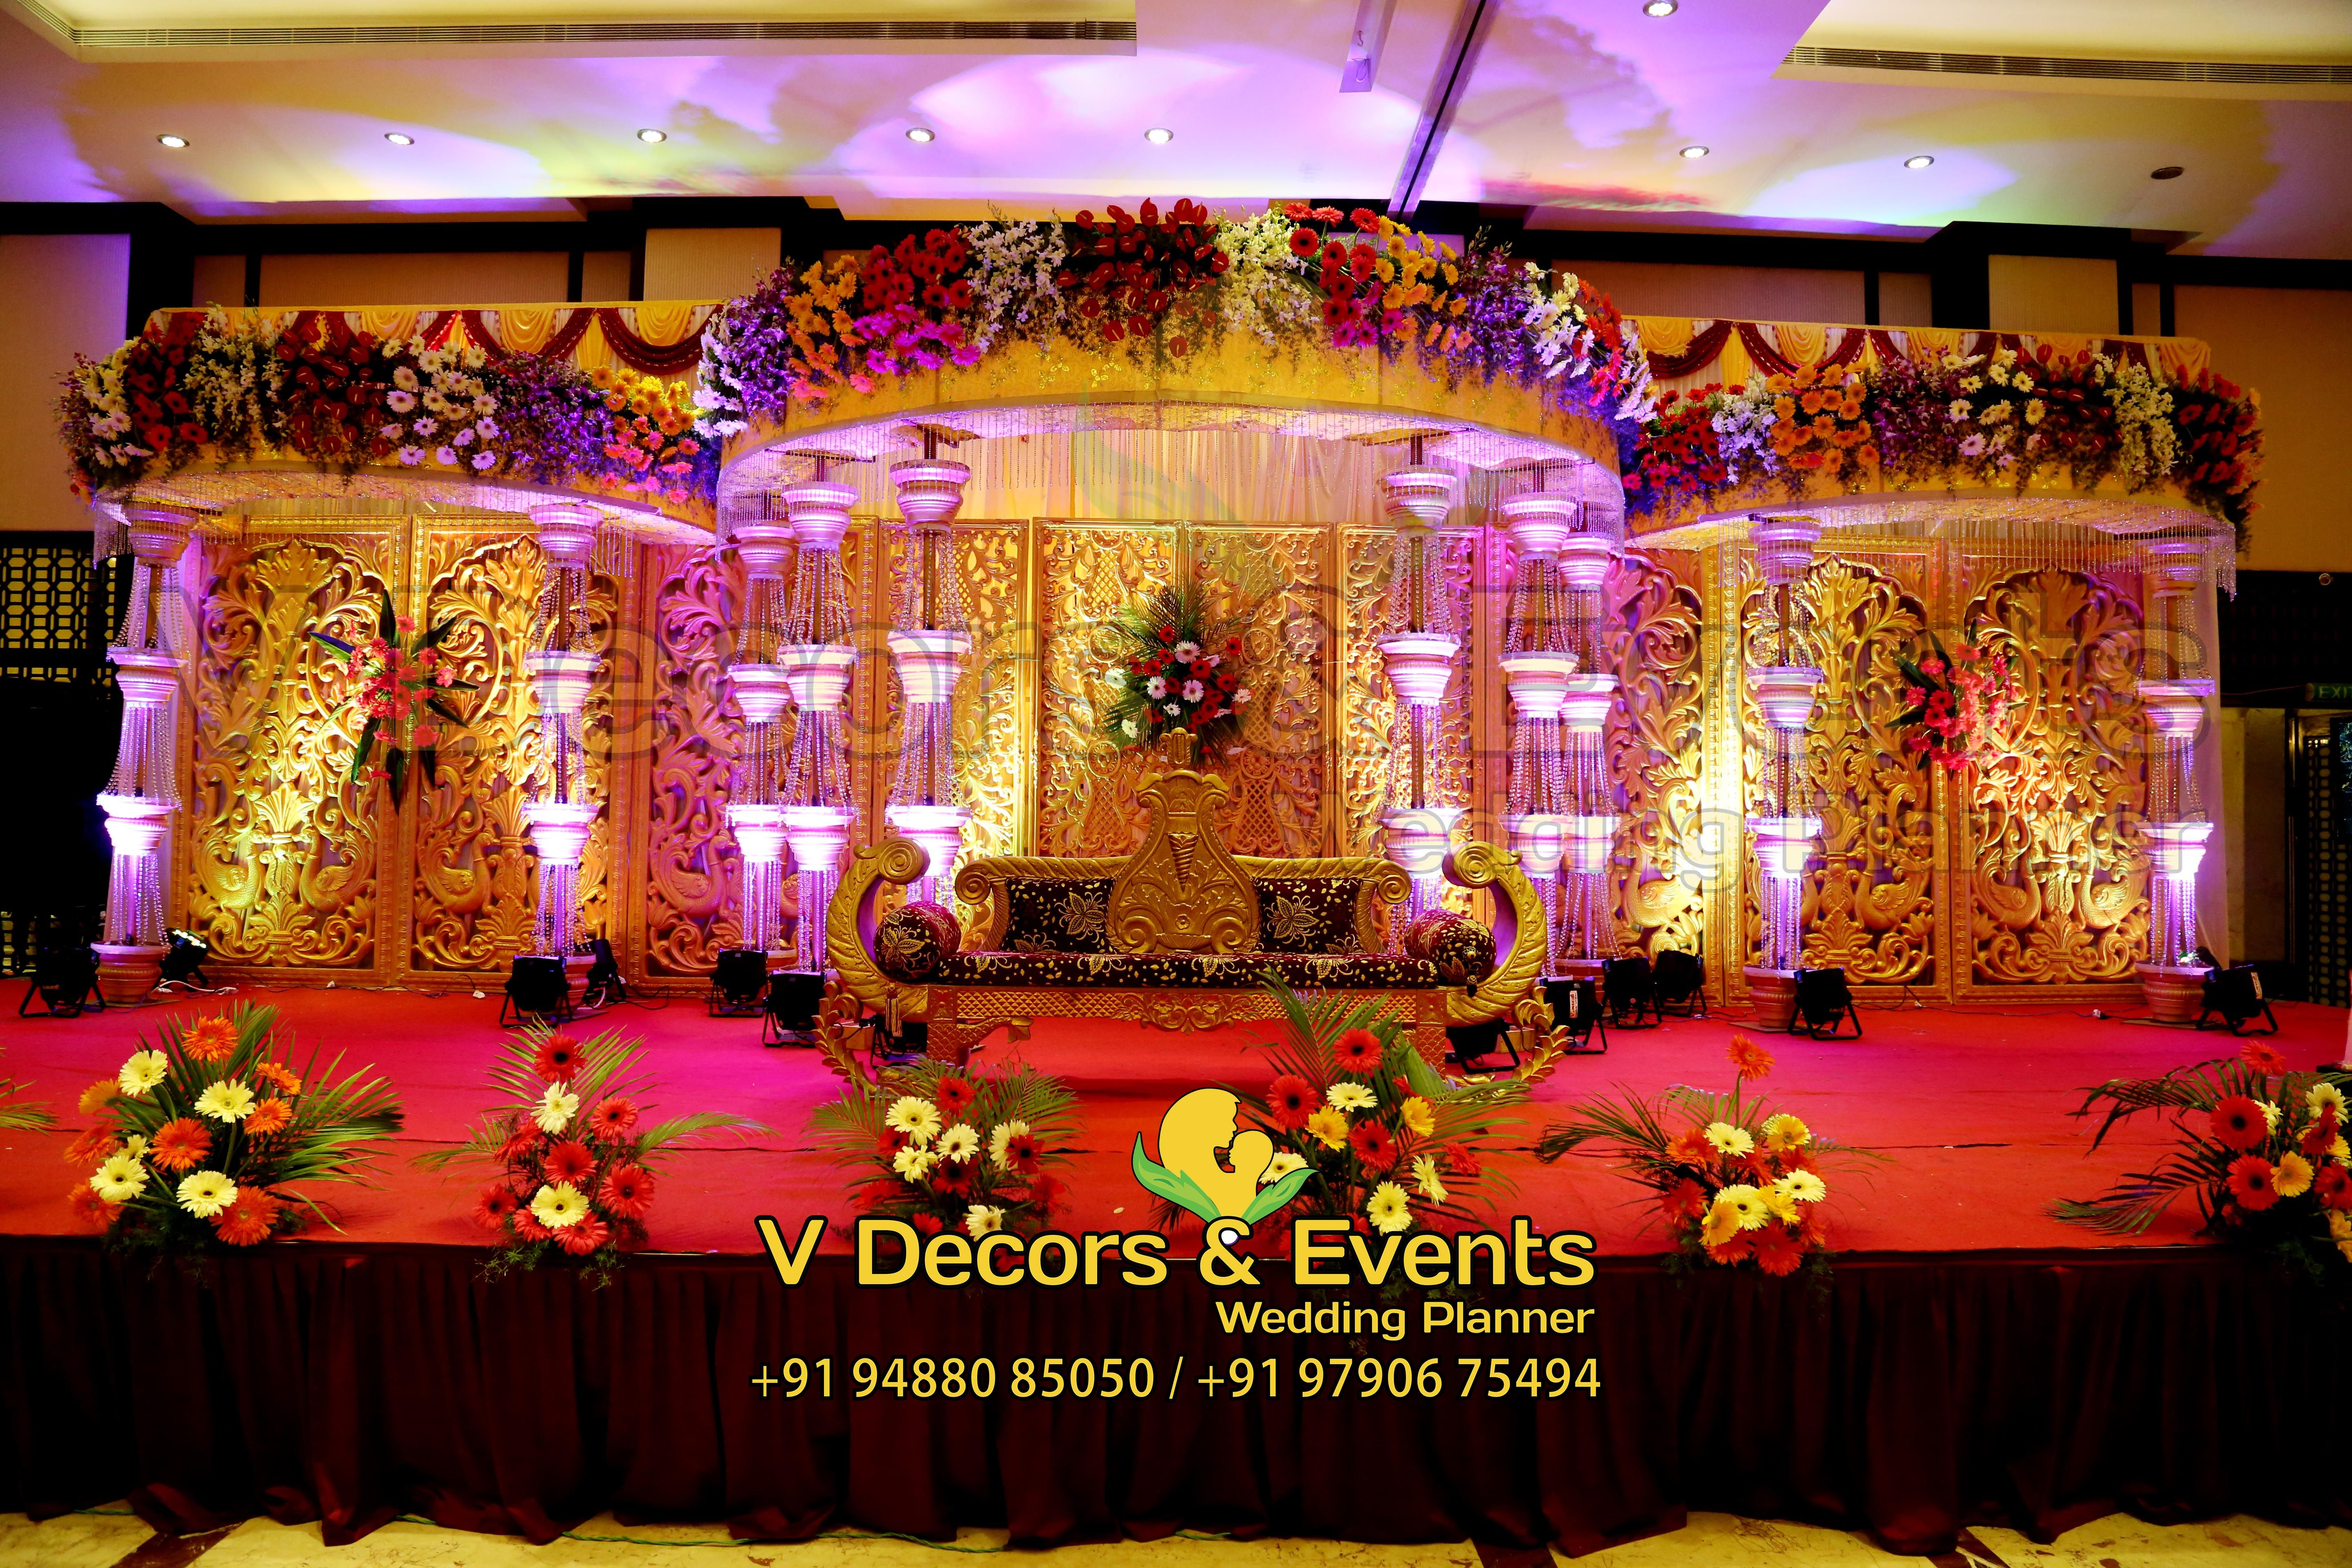 Pin by v decors and events on wedding decorations in pondicherry hall decorations wedding decorations pondicherry wedding planners style chennai swag wedding planer wedding decor junglespirit Gallery